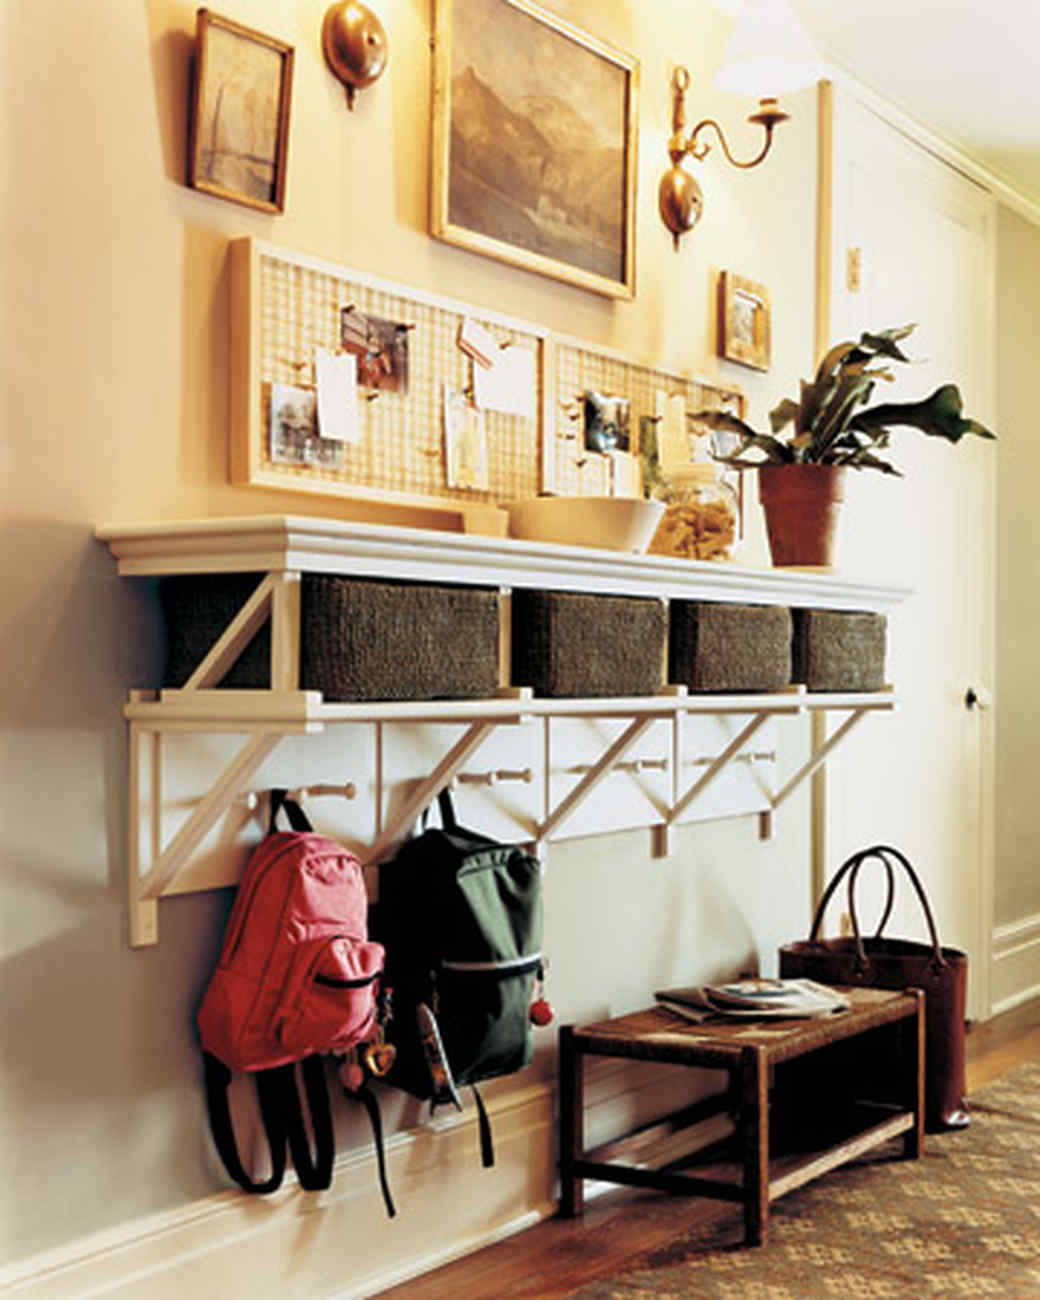 Hallway Entry Decorating Ideas: Entryway Organizing Ideas